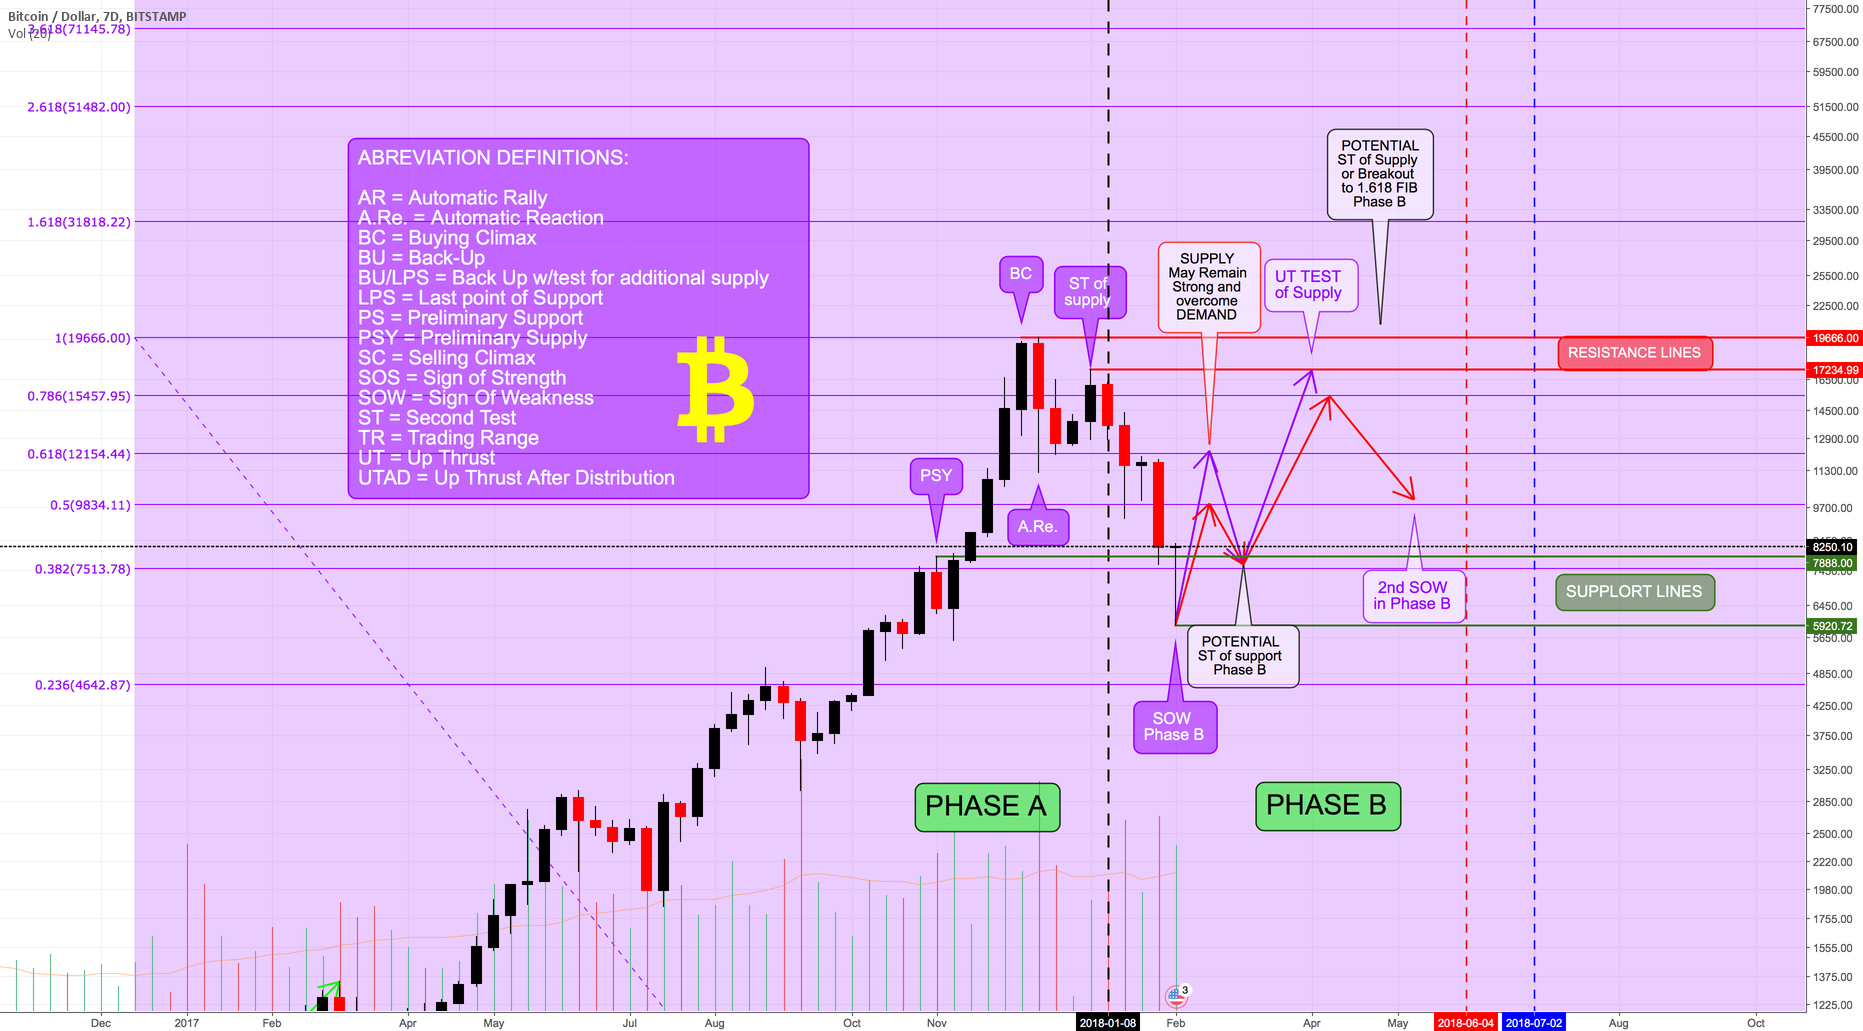 BTCUSD - BITSTAMP - Wyckoff Distribution Schematic #1 or #2